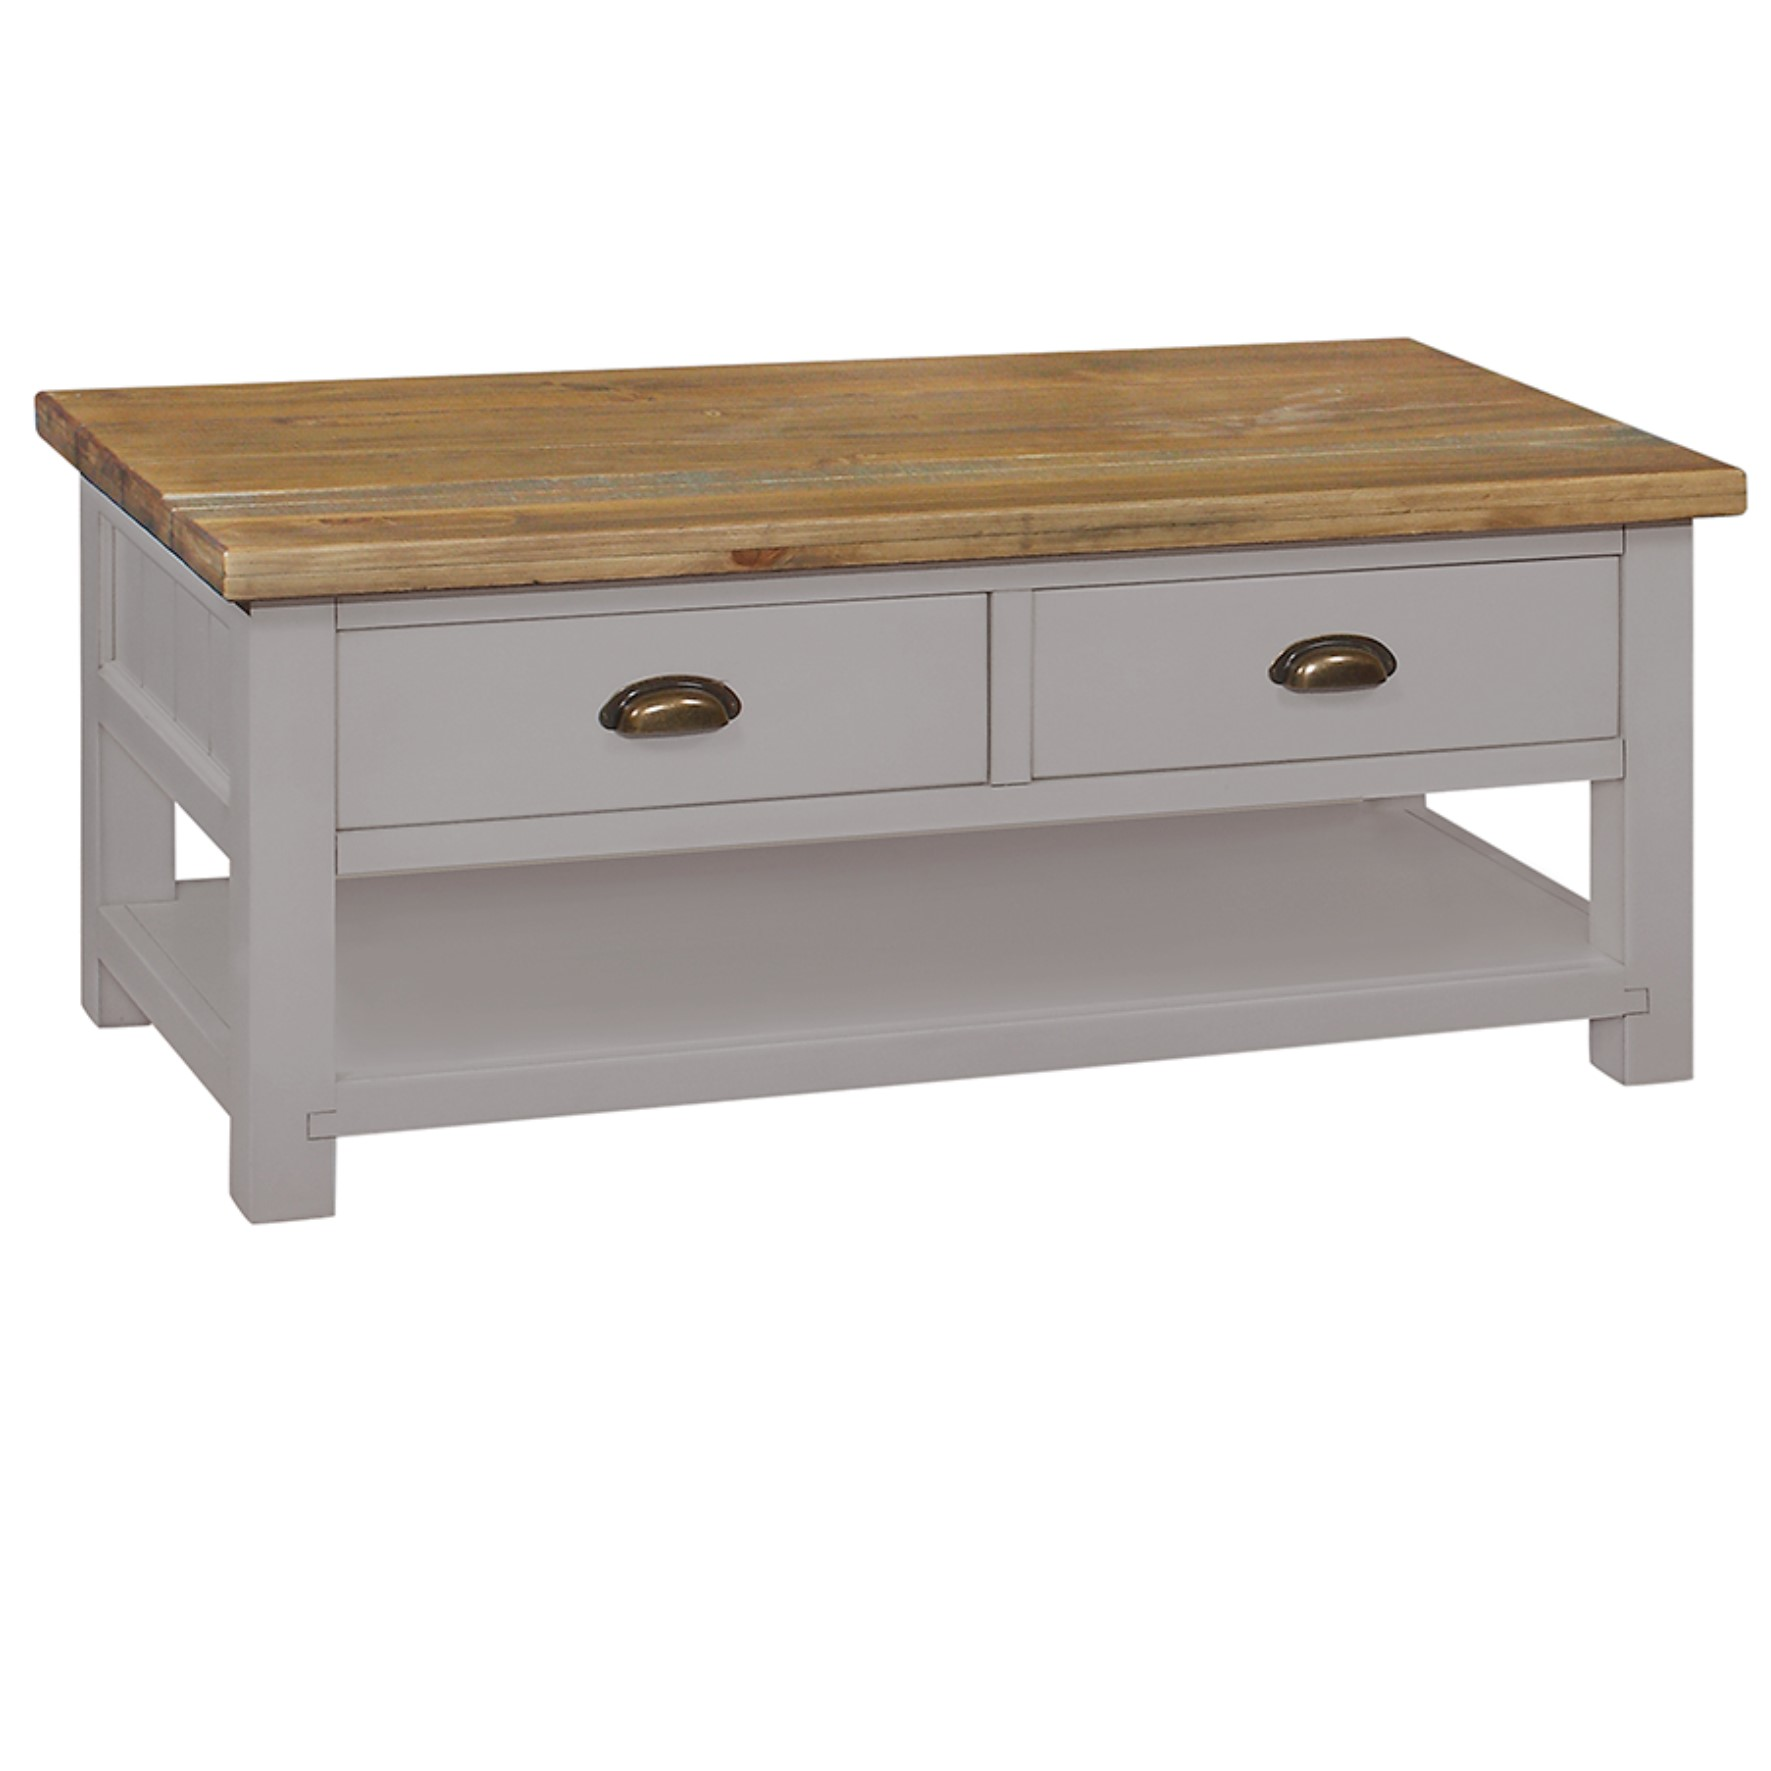 Charlton Grey - 2 Drawer Coffee Table